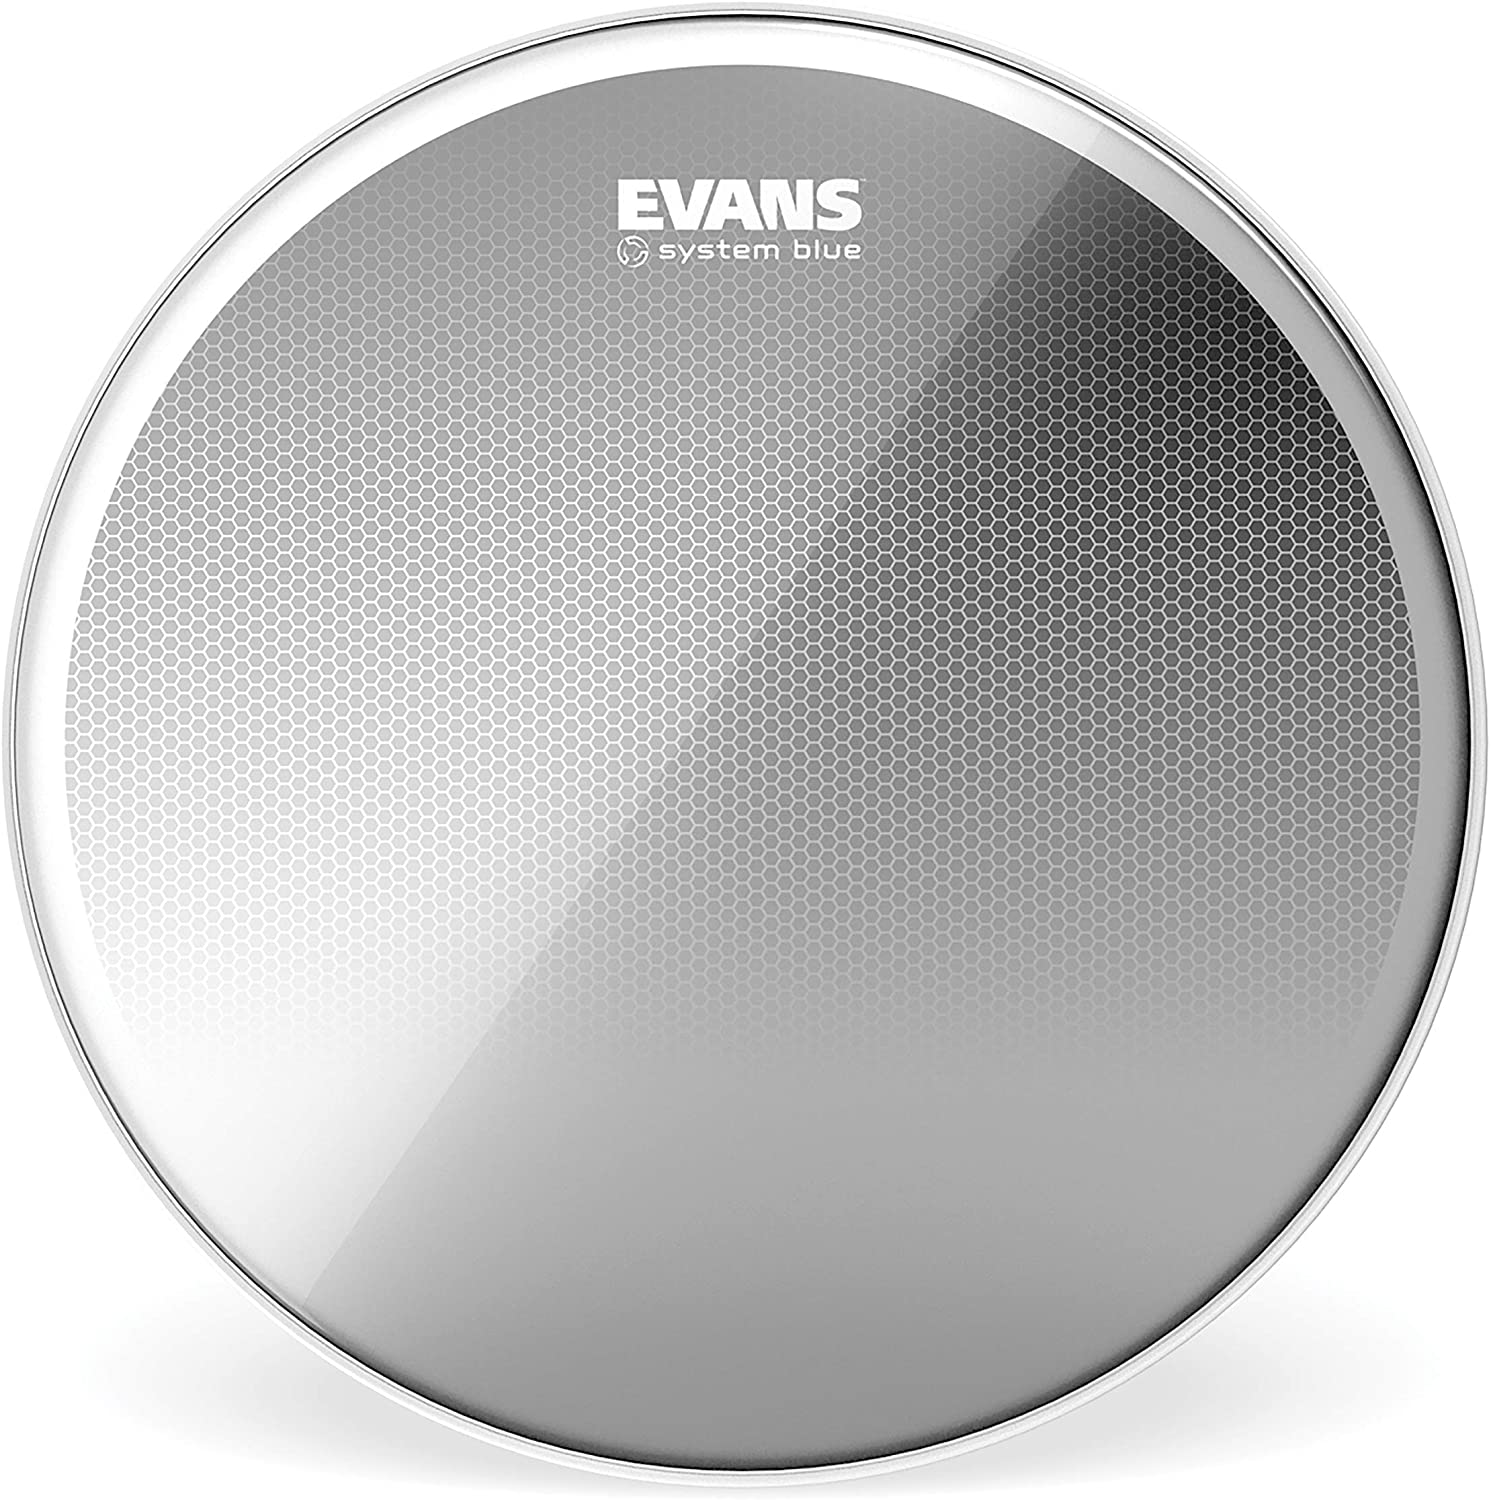 Evans System Blue SST Marching Tenor Drum Head, 10 Inch - TT10SB1